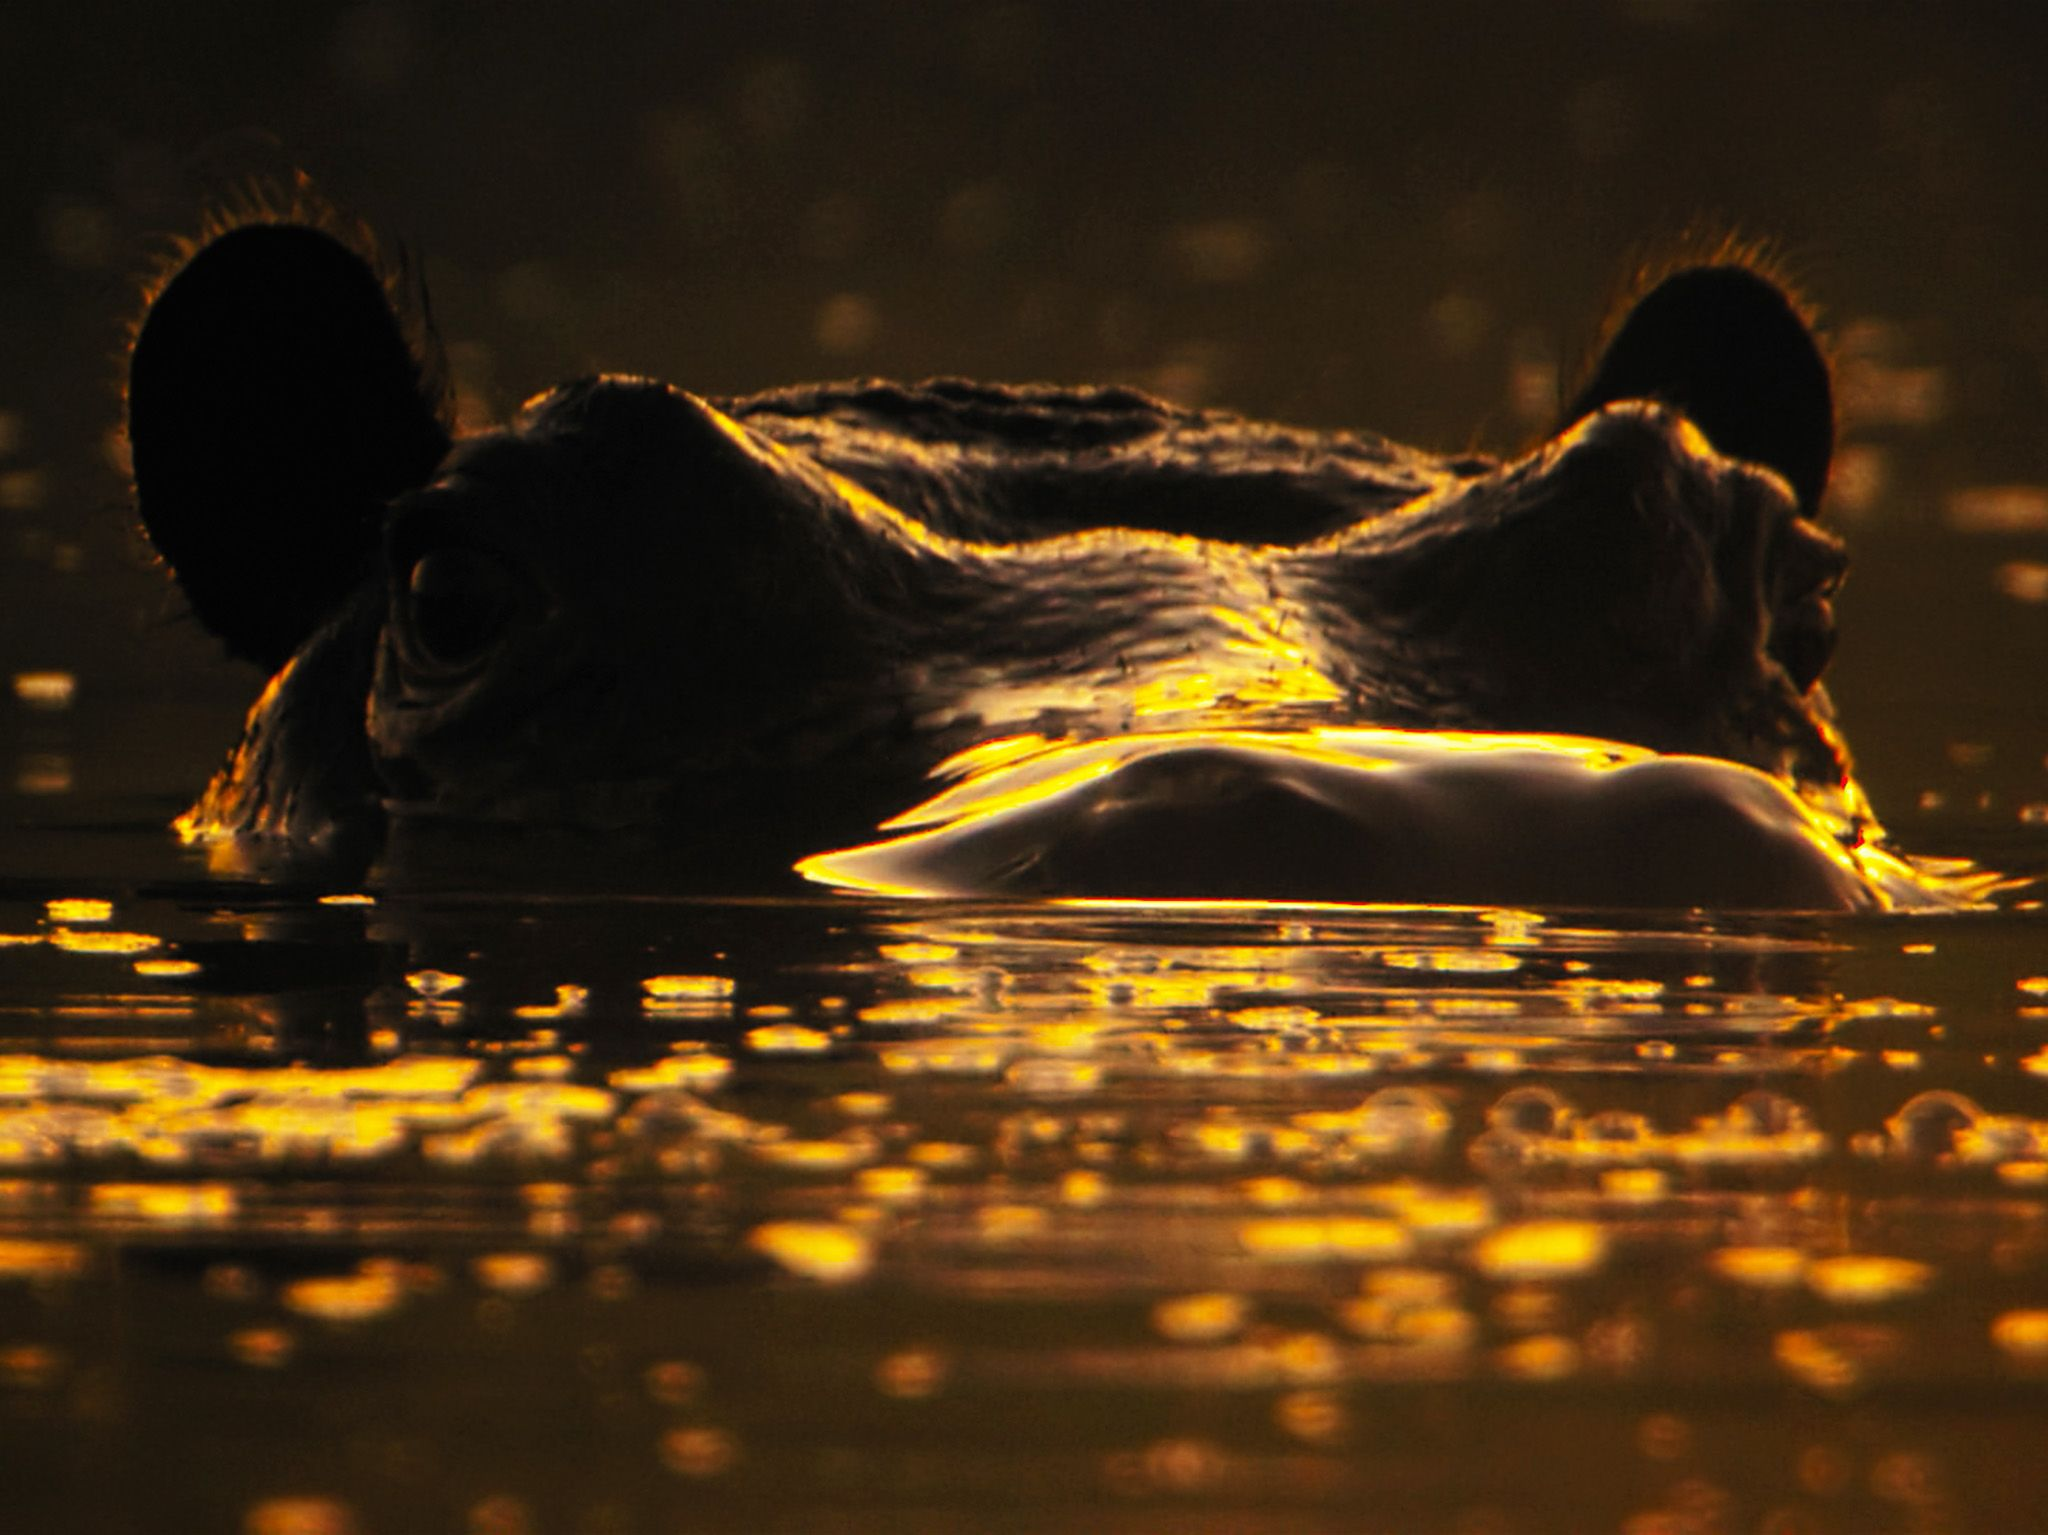 Botswana:  Hippo's head poking out of water. This image is from Africa's Wild Side. [Photo of the day - April 2020]